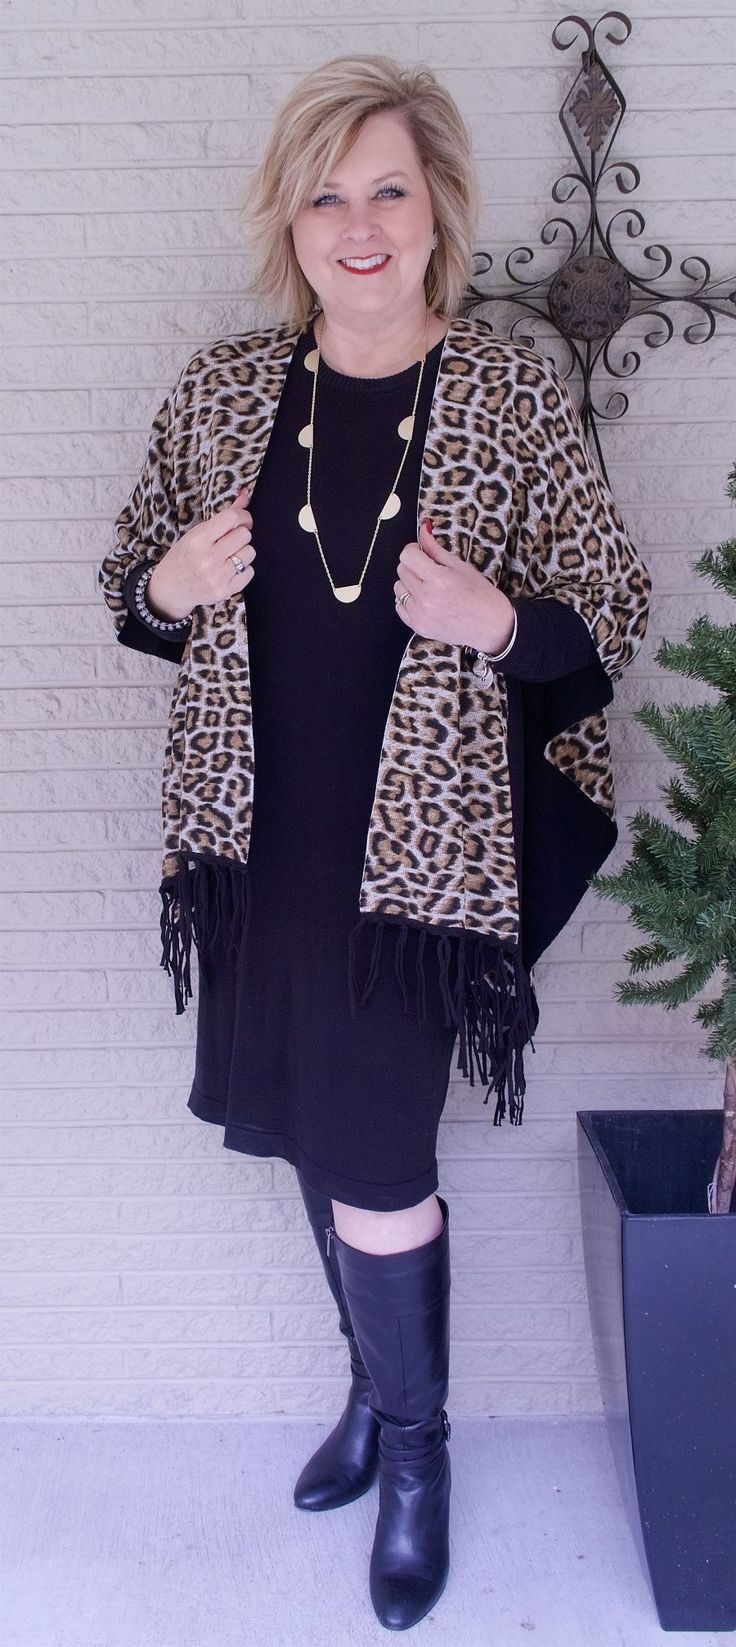 50 IS NOT OLD | WHAT IS A RUANA | Shawl | Wrap | Leopard print | Reversible clothing | Date Night Outfit | Fashion over 40 for the everyday woman @chicos